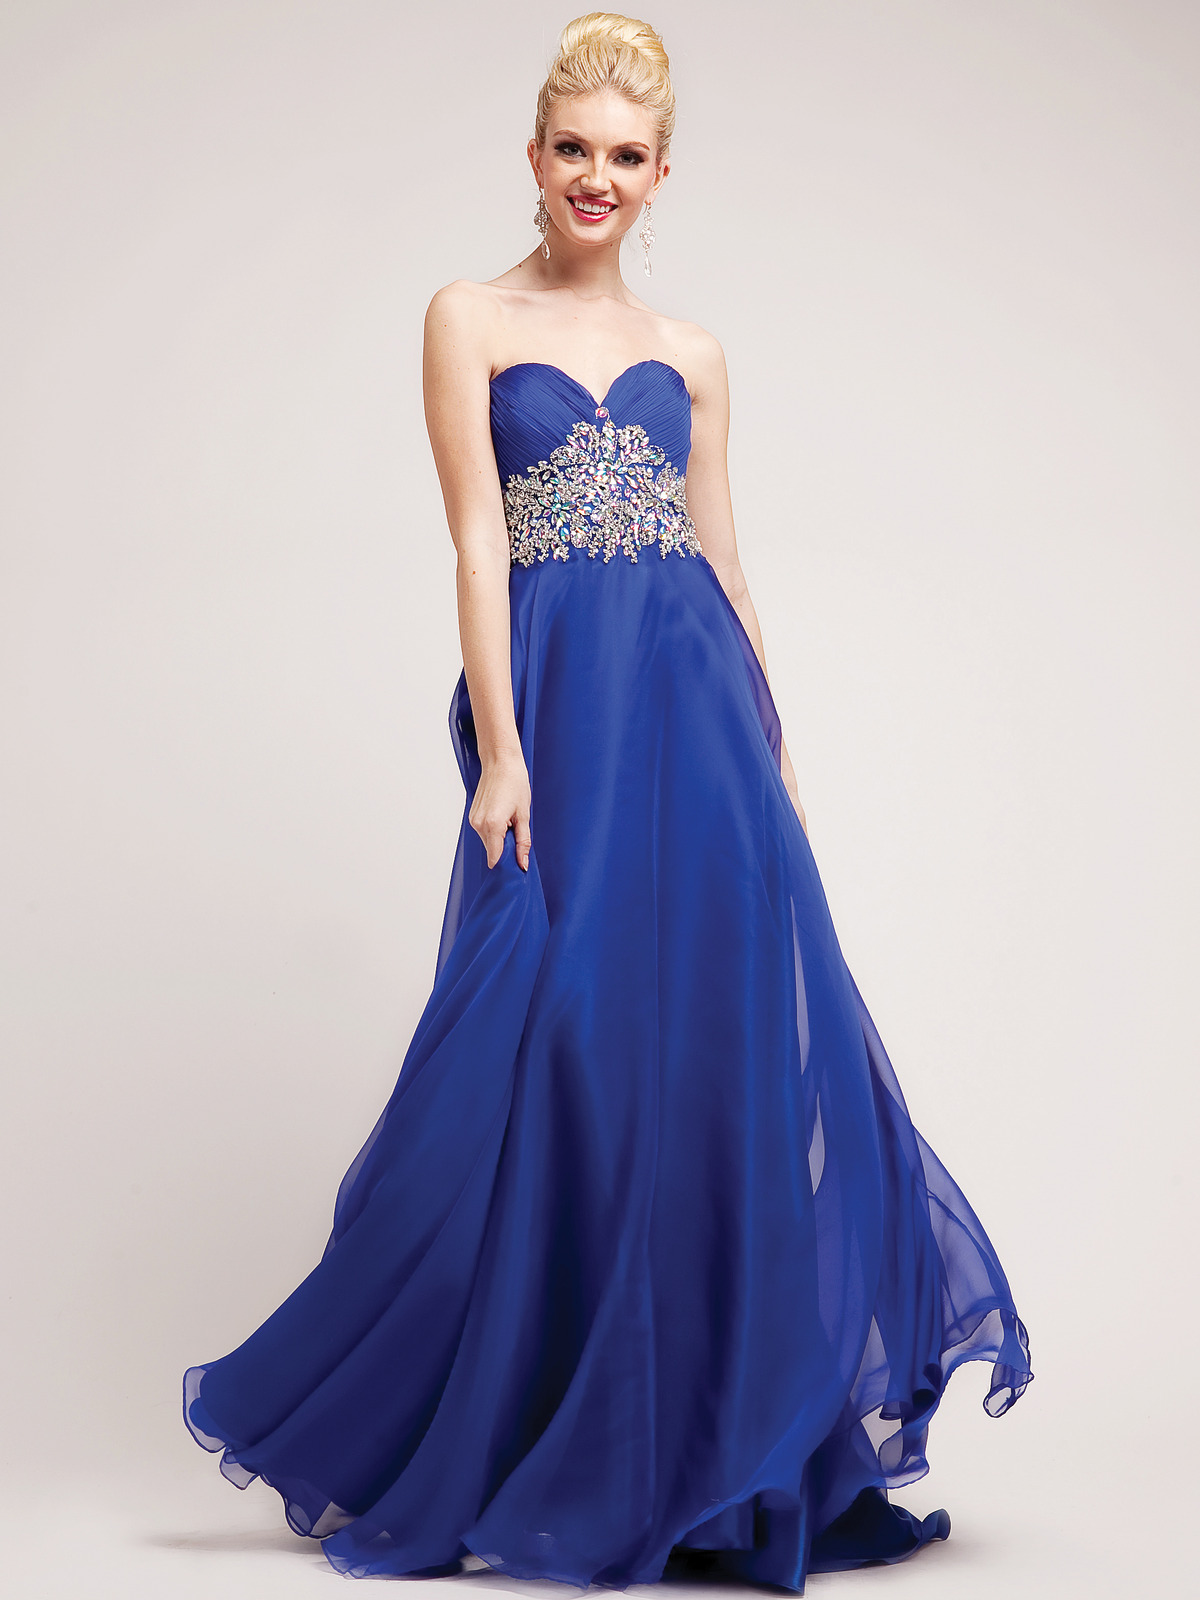 Embellished Sweetheart Empire Waist Prom Dress - Sung Boutique L.A.